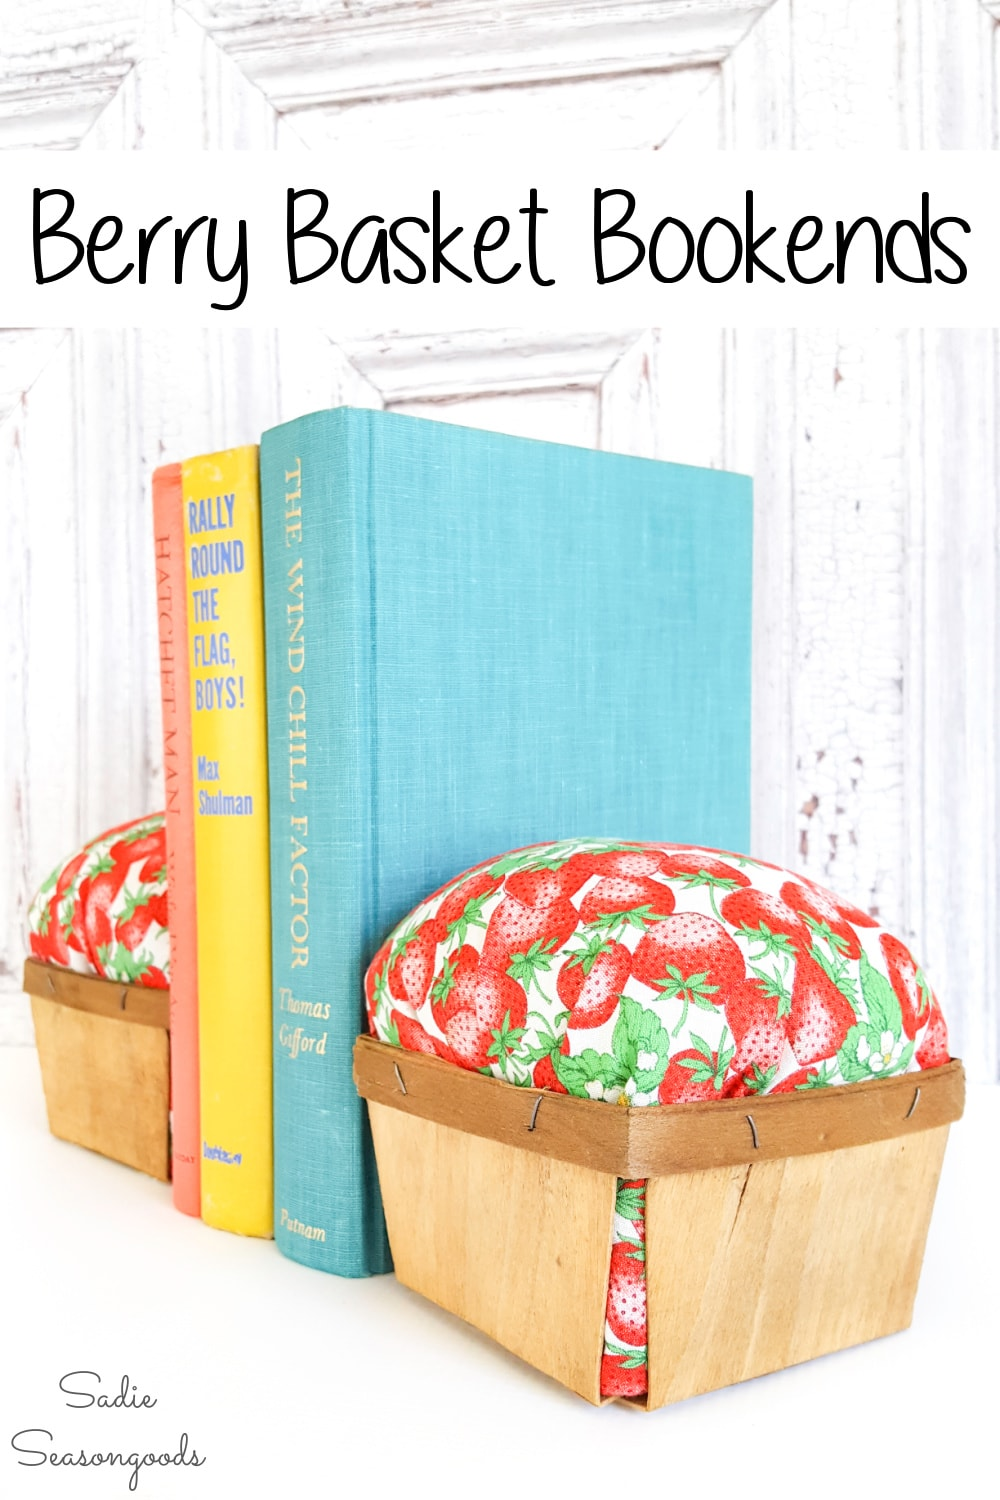 wooden berry baskets as DIY bookends